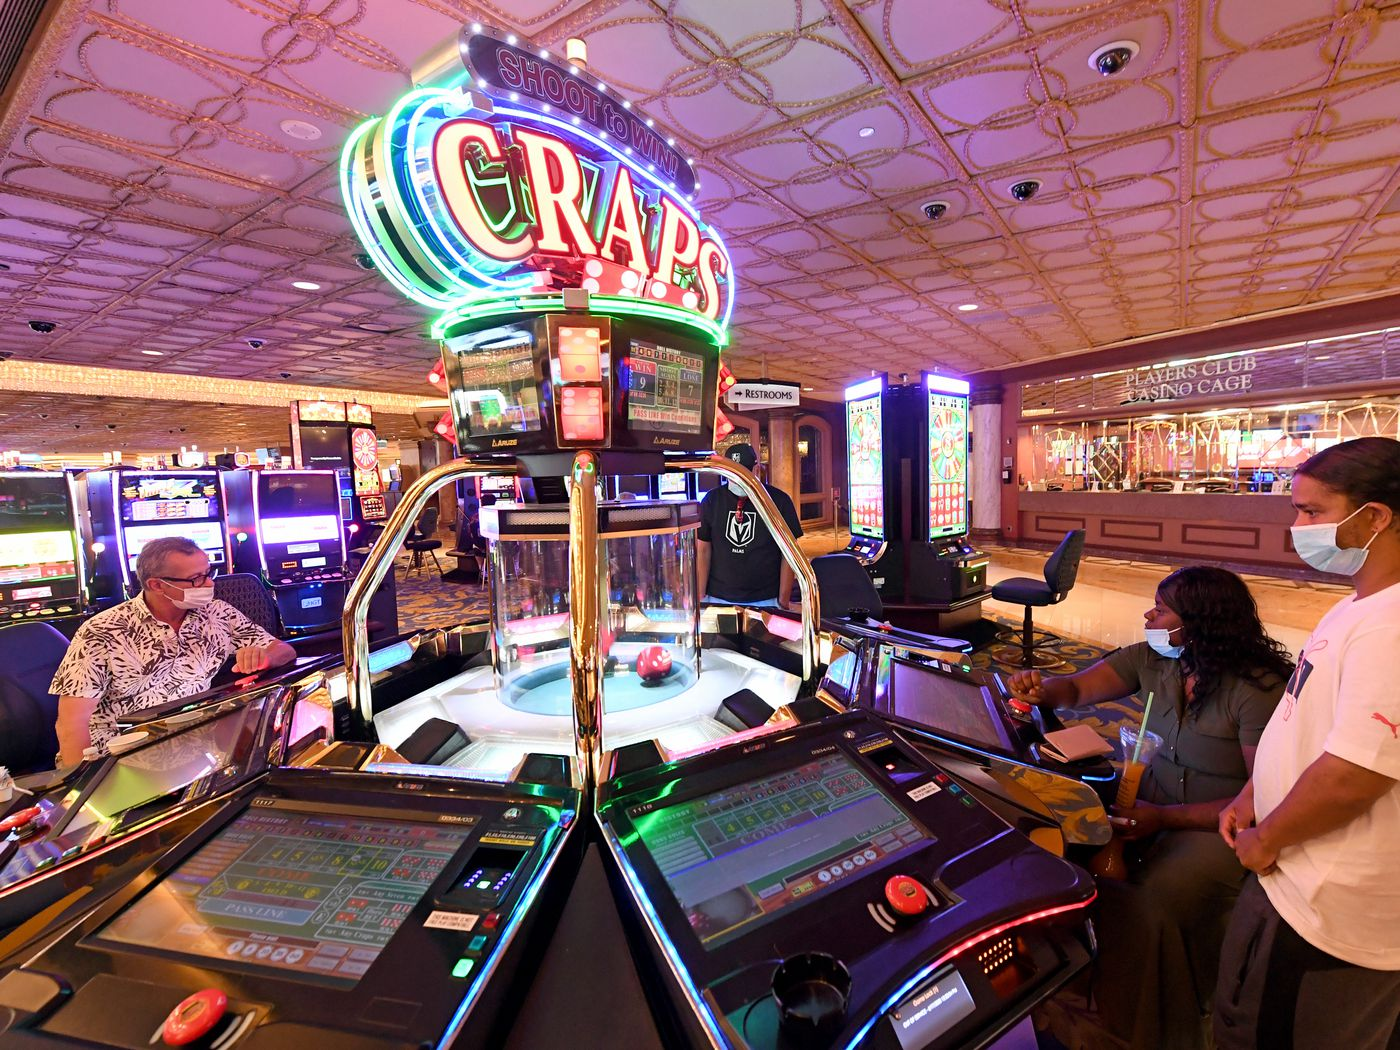 Opinions In Gambling To Be A Source Of Community Funds